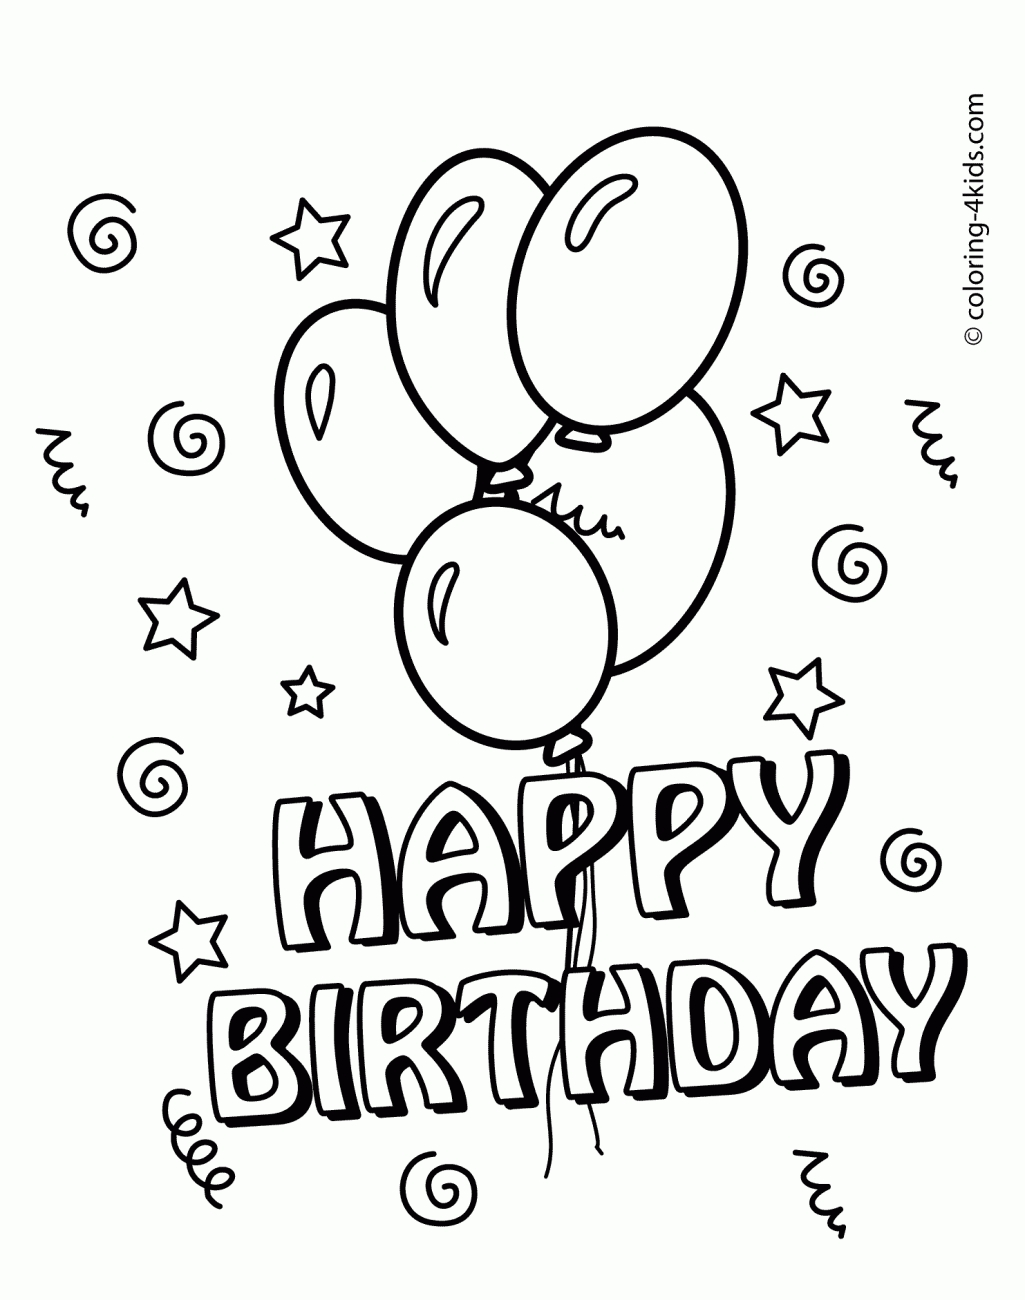 happy birthday drawings step by step ; 8fe93a53a41821292c9043464f822e7c